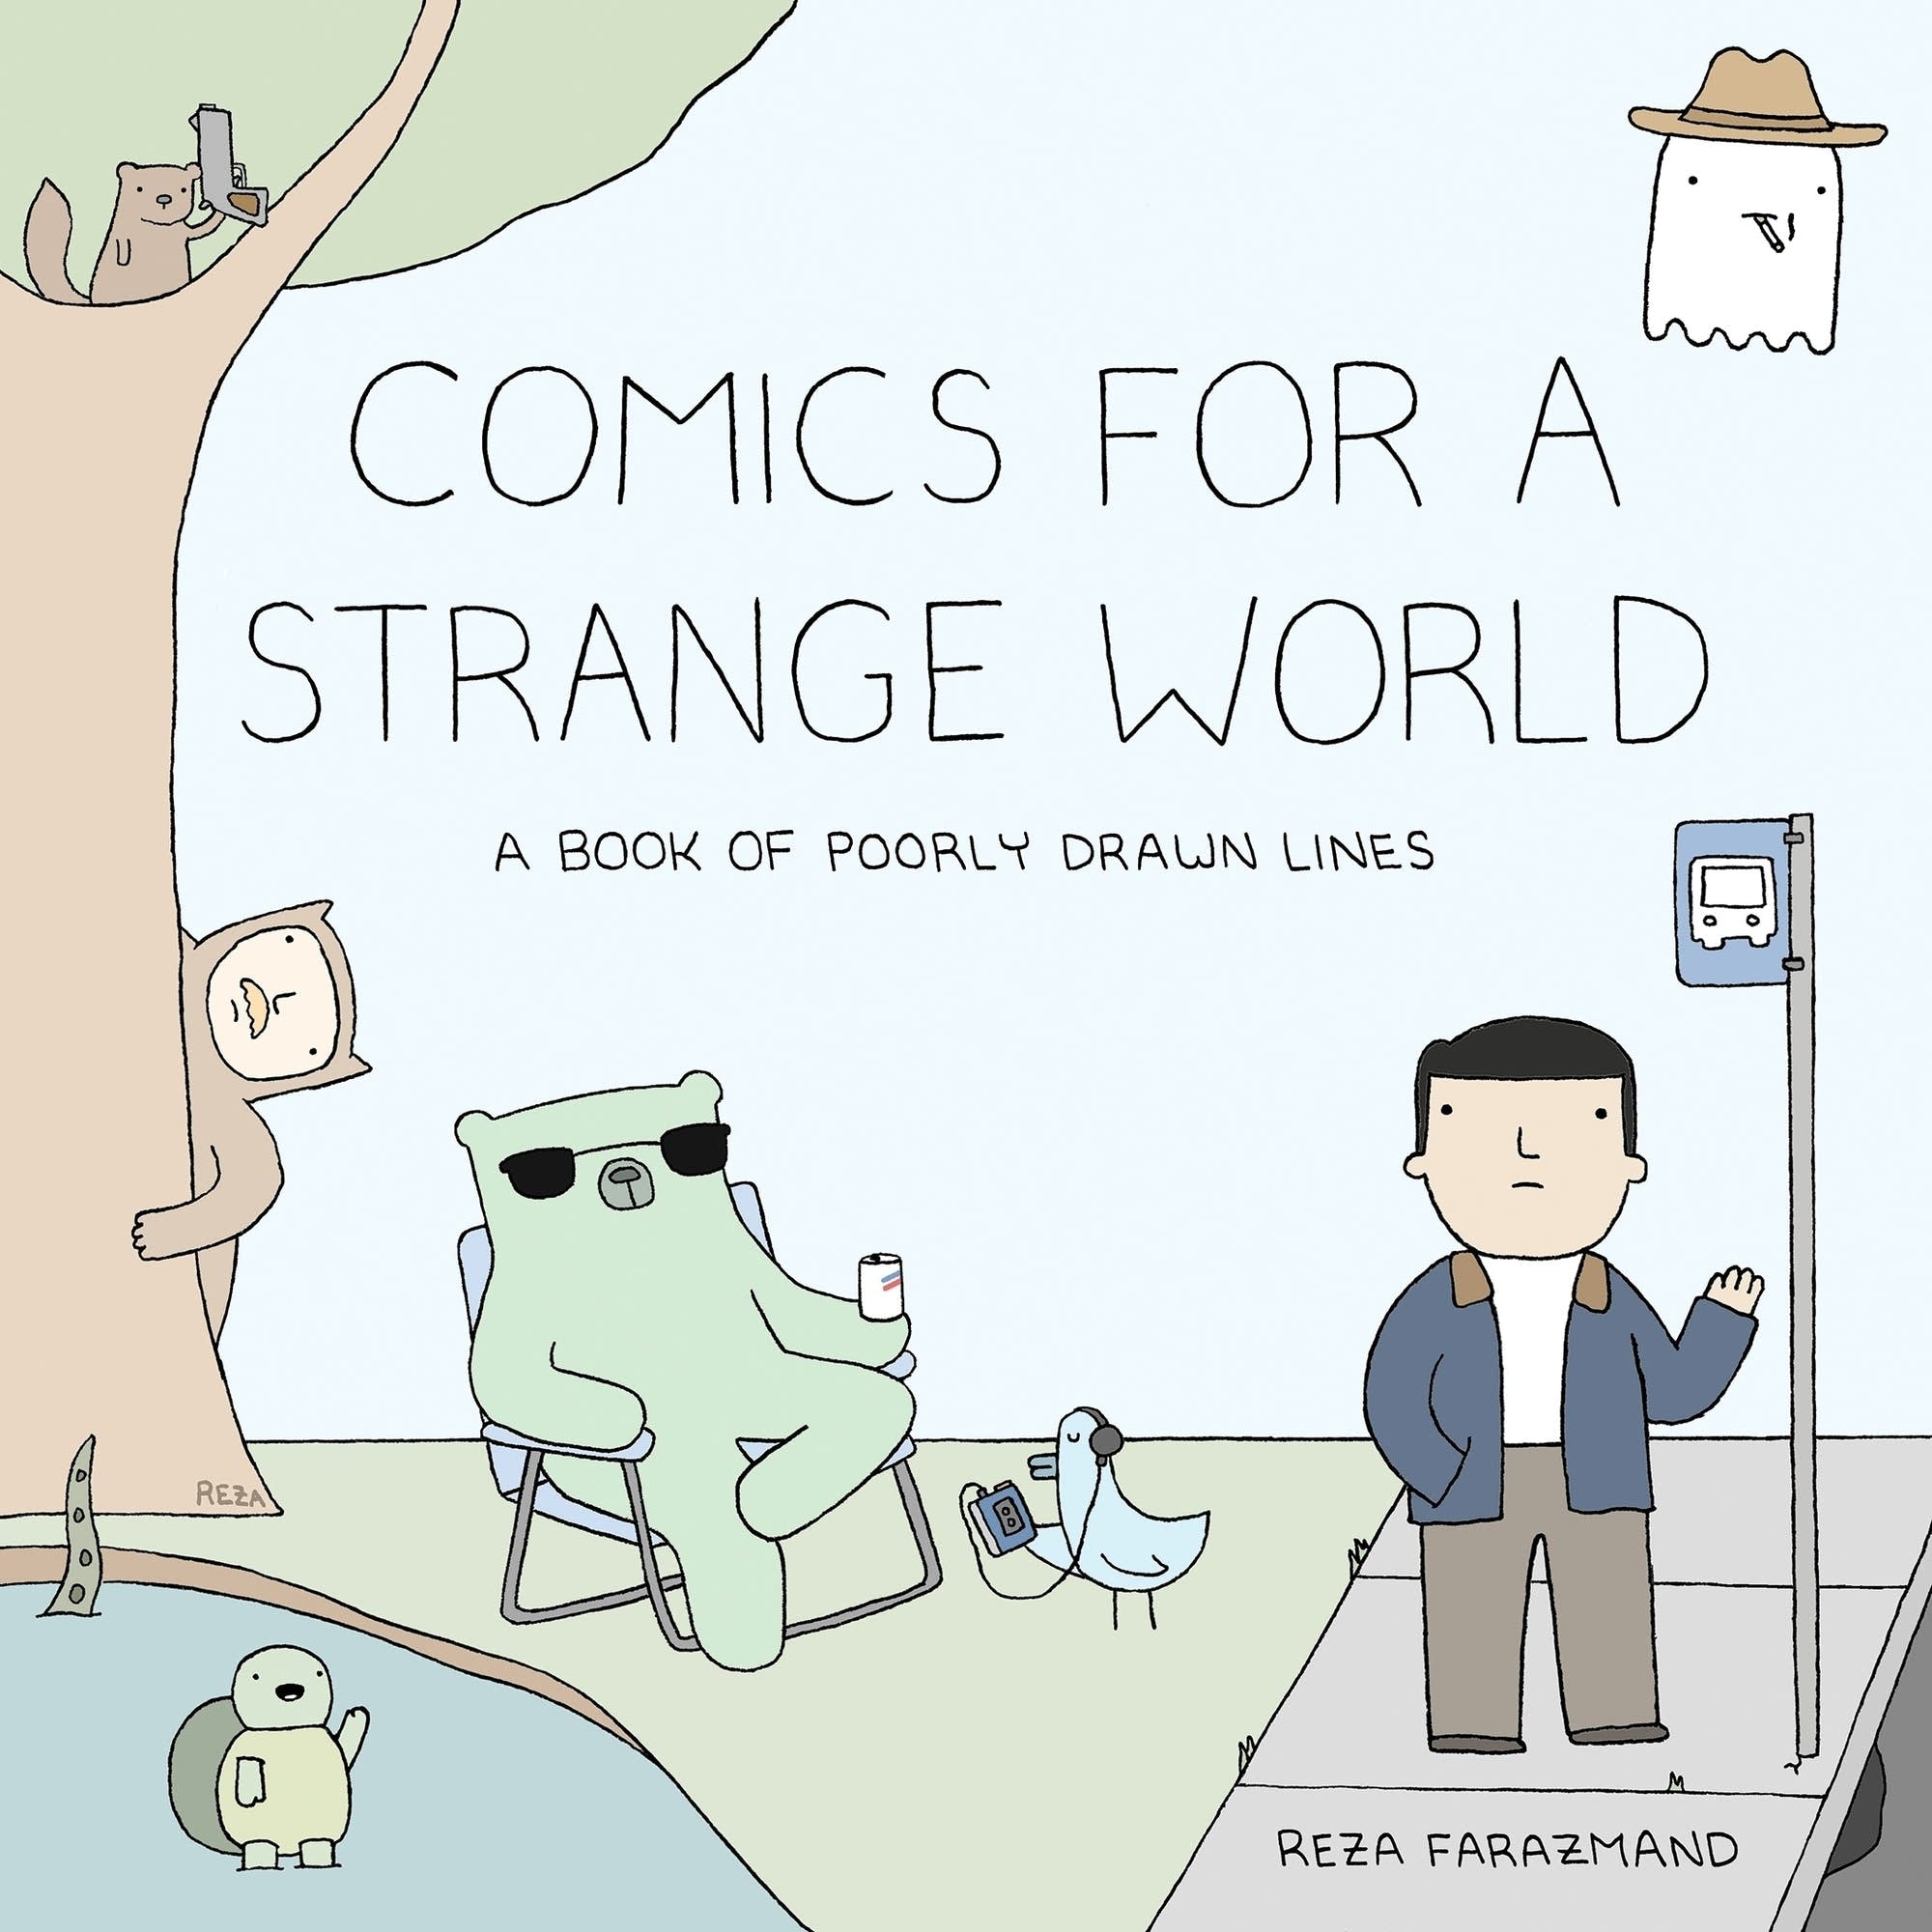 Episode 228 | Goodreads Book of the Month: Comics For A Strange World: A Book of Poorly Drawn Lines